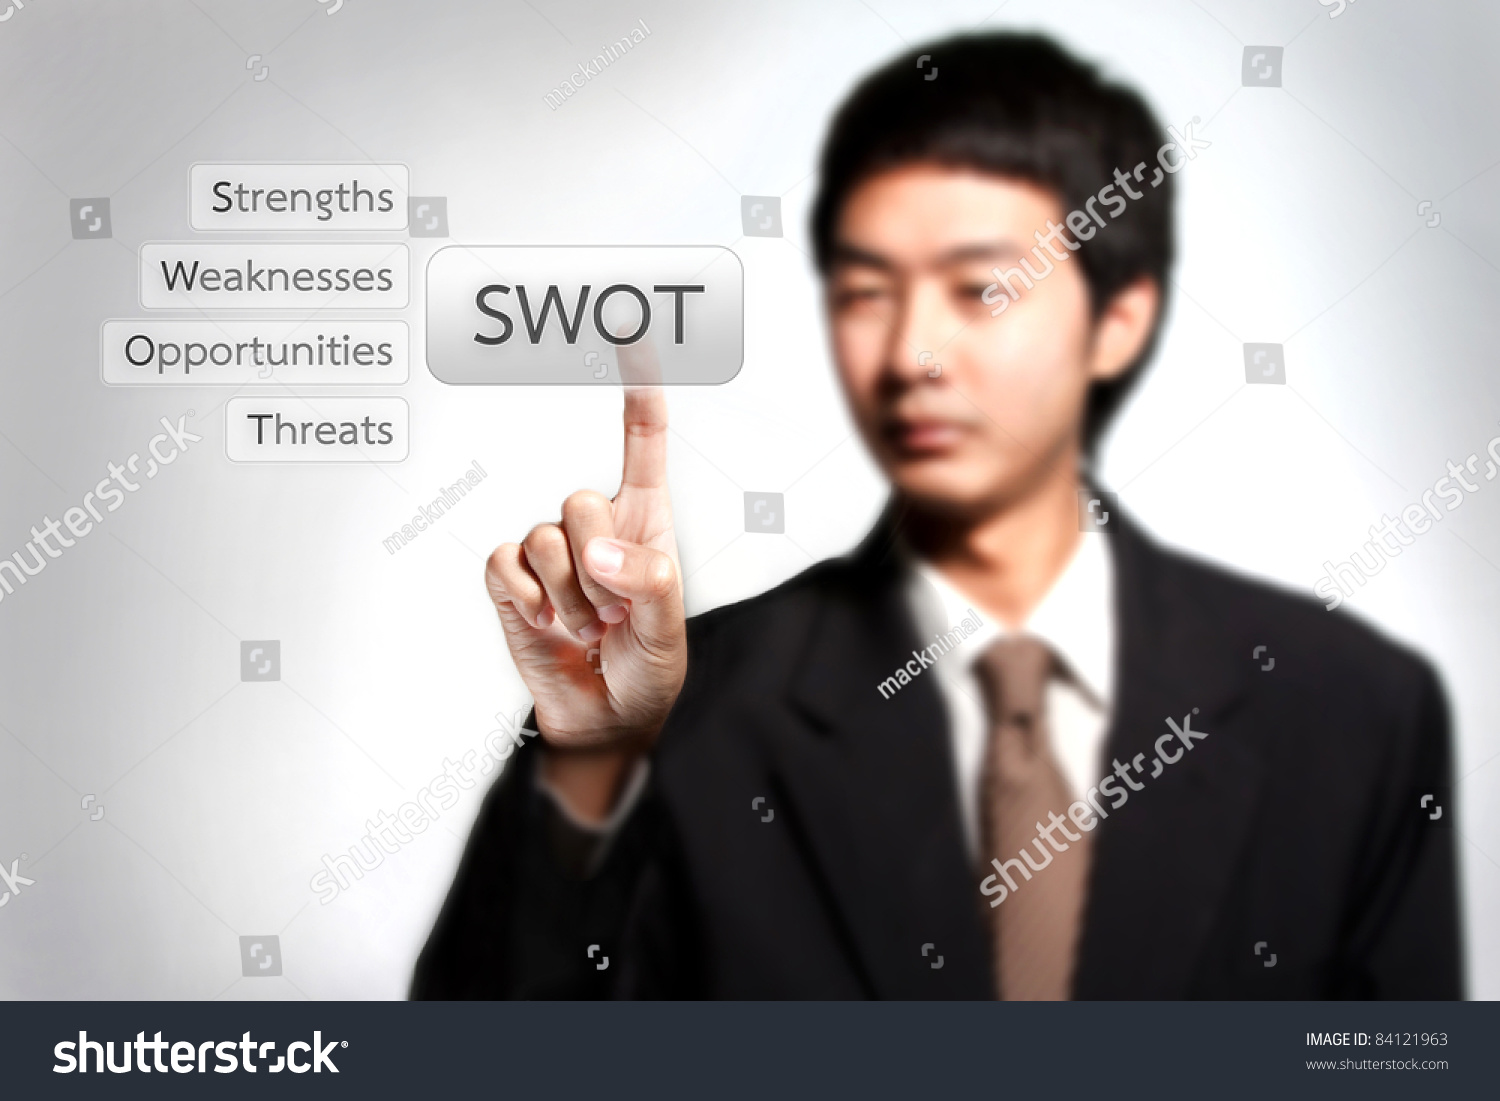 swot analysis strength weakness opportunity threat stock photo swot analysis strength weakness opportunity and threat business man pressing on